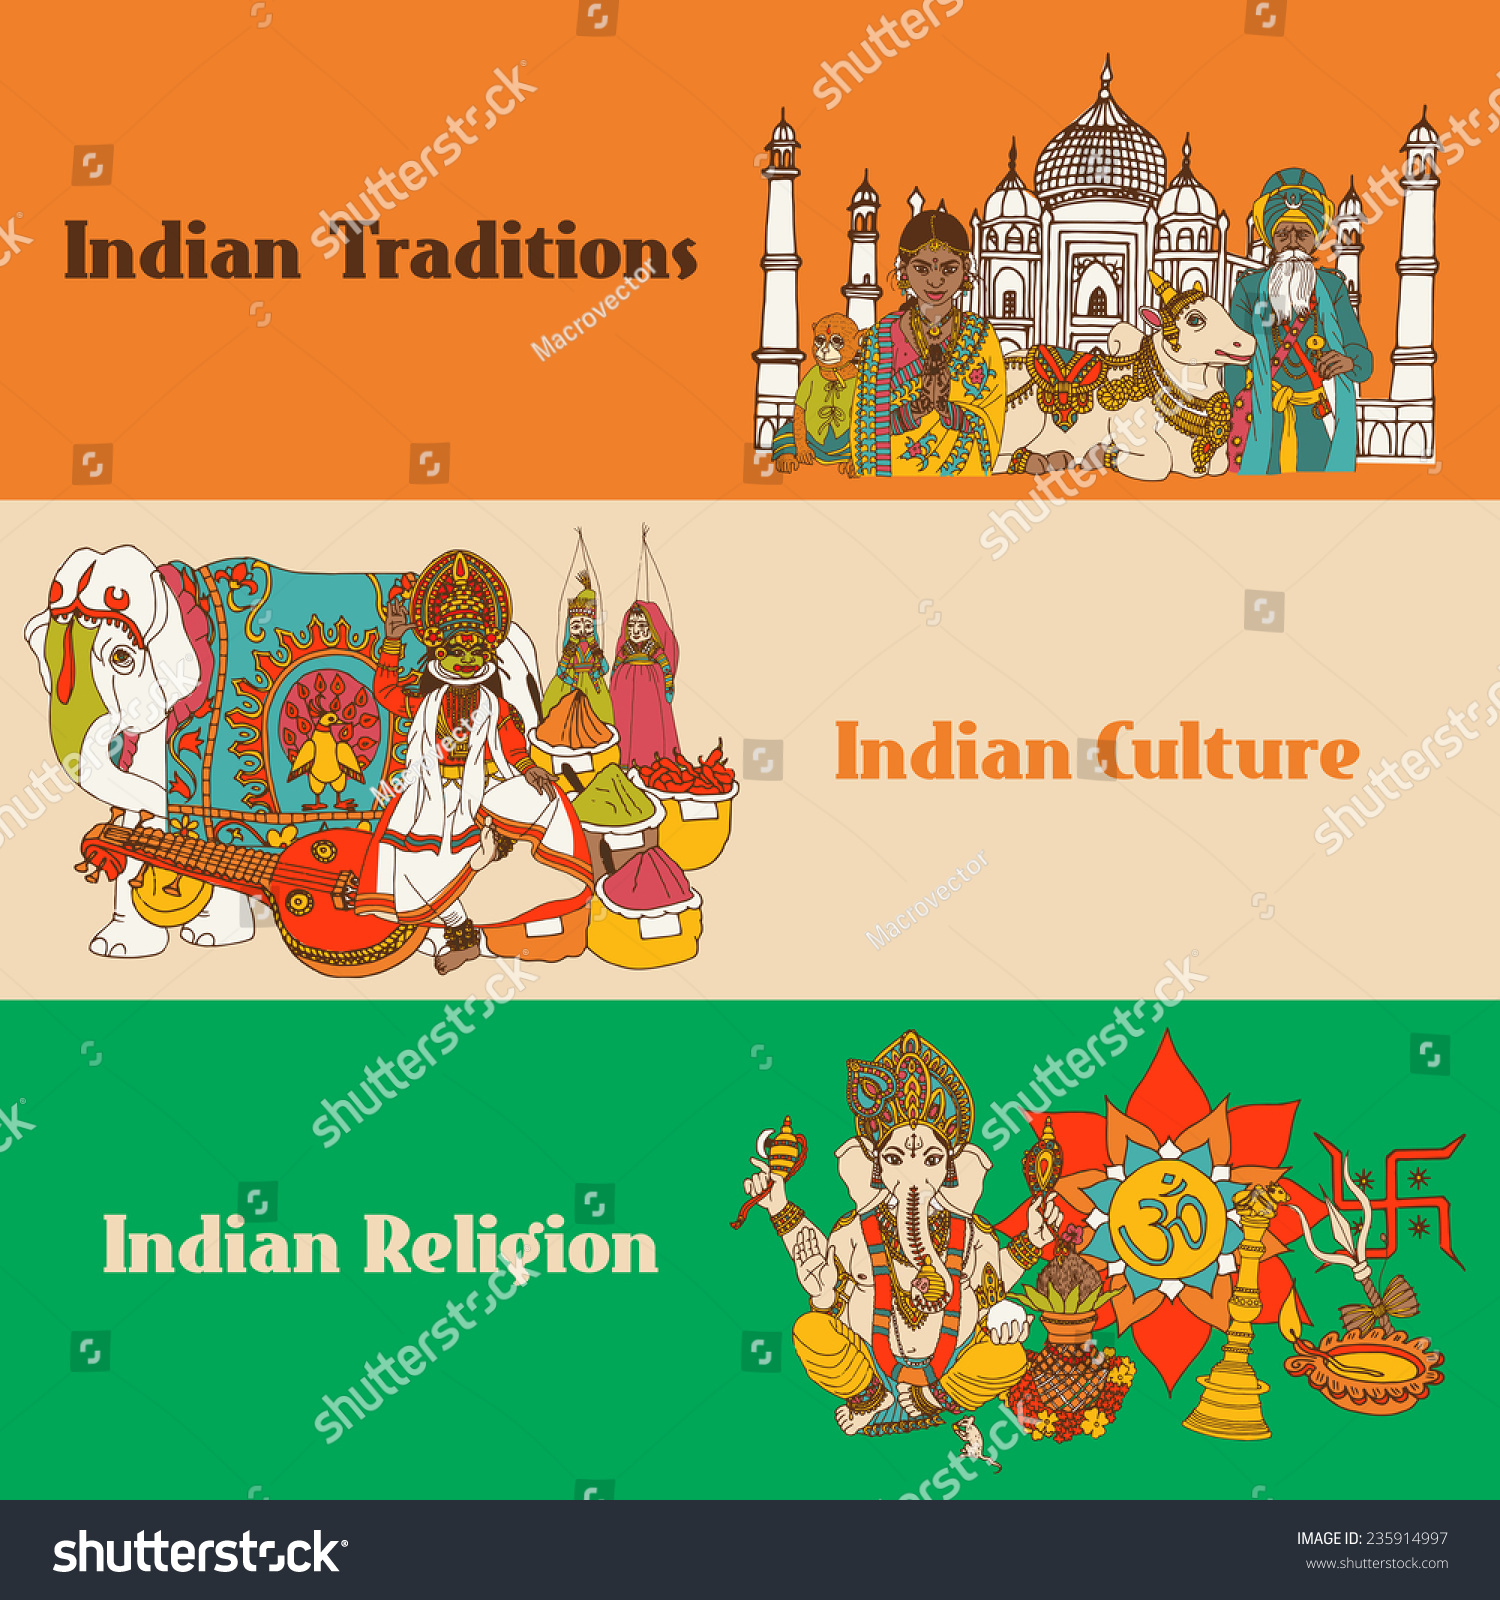 the indian culture Archaeological finds from india give us glimpses of a culture uniquely at ease with itself.